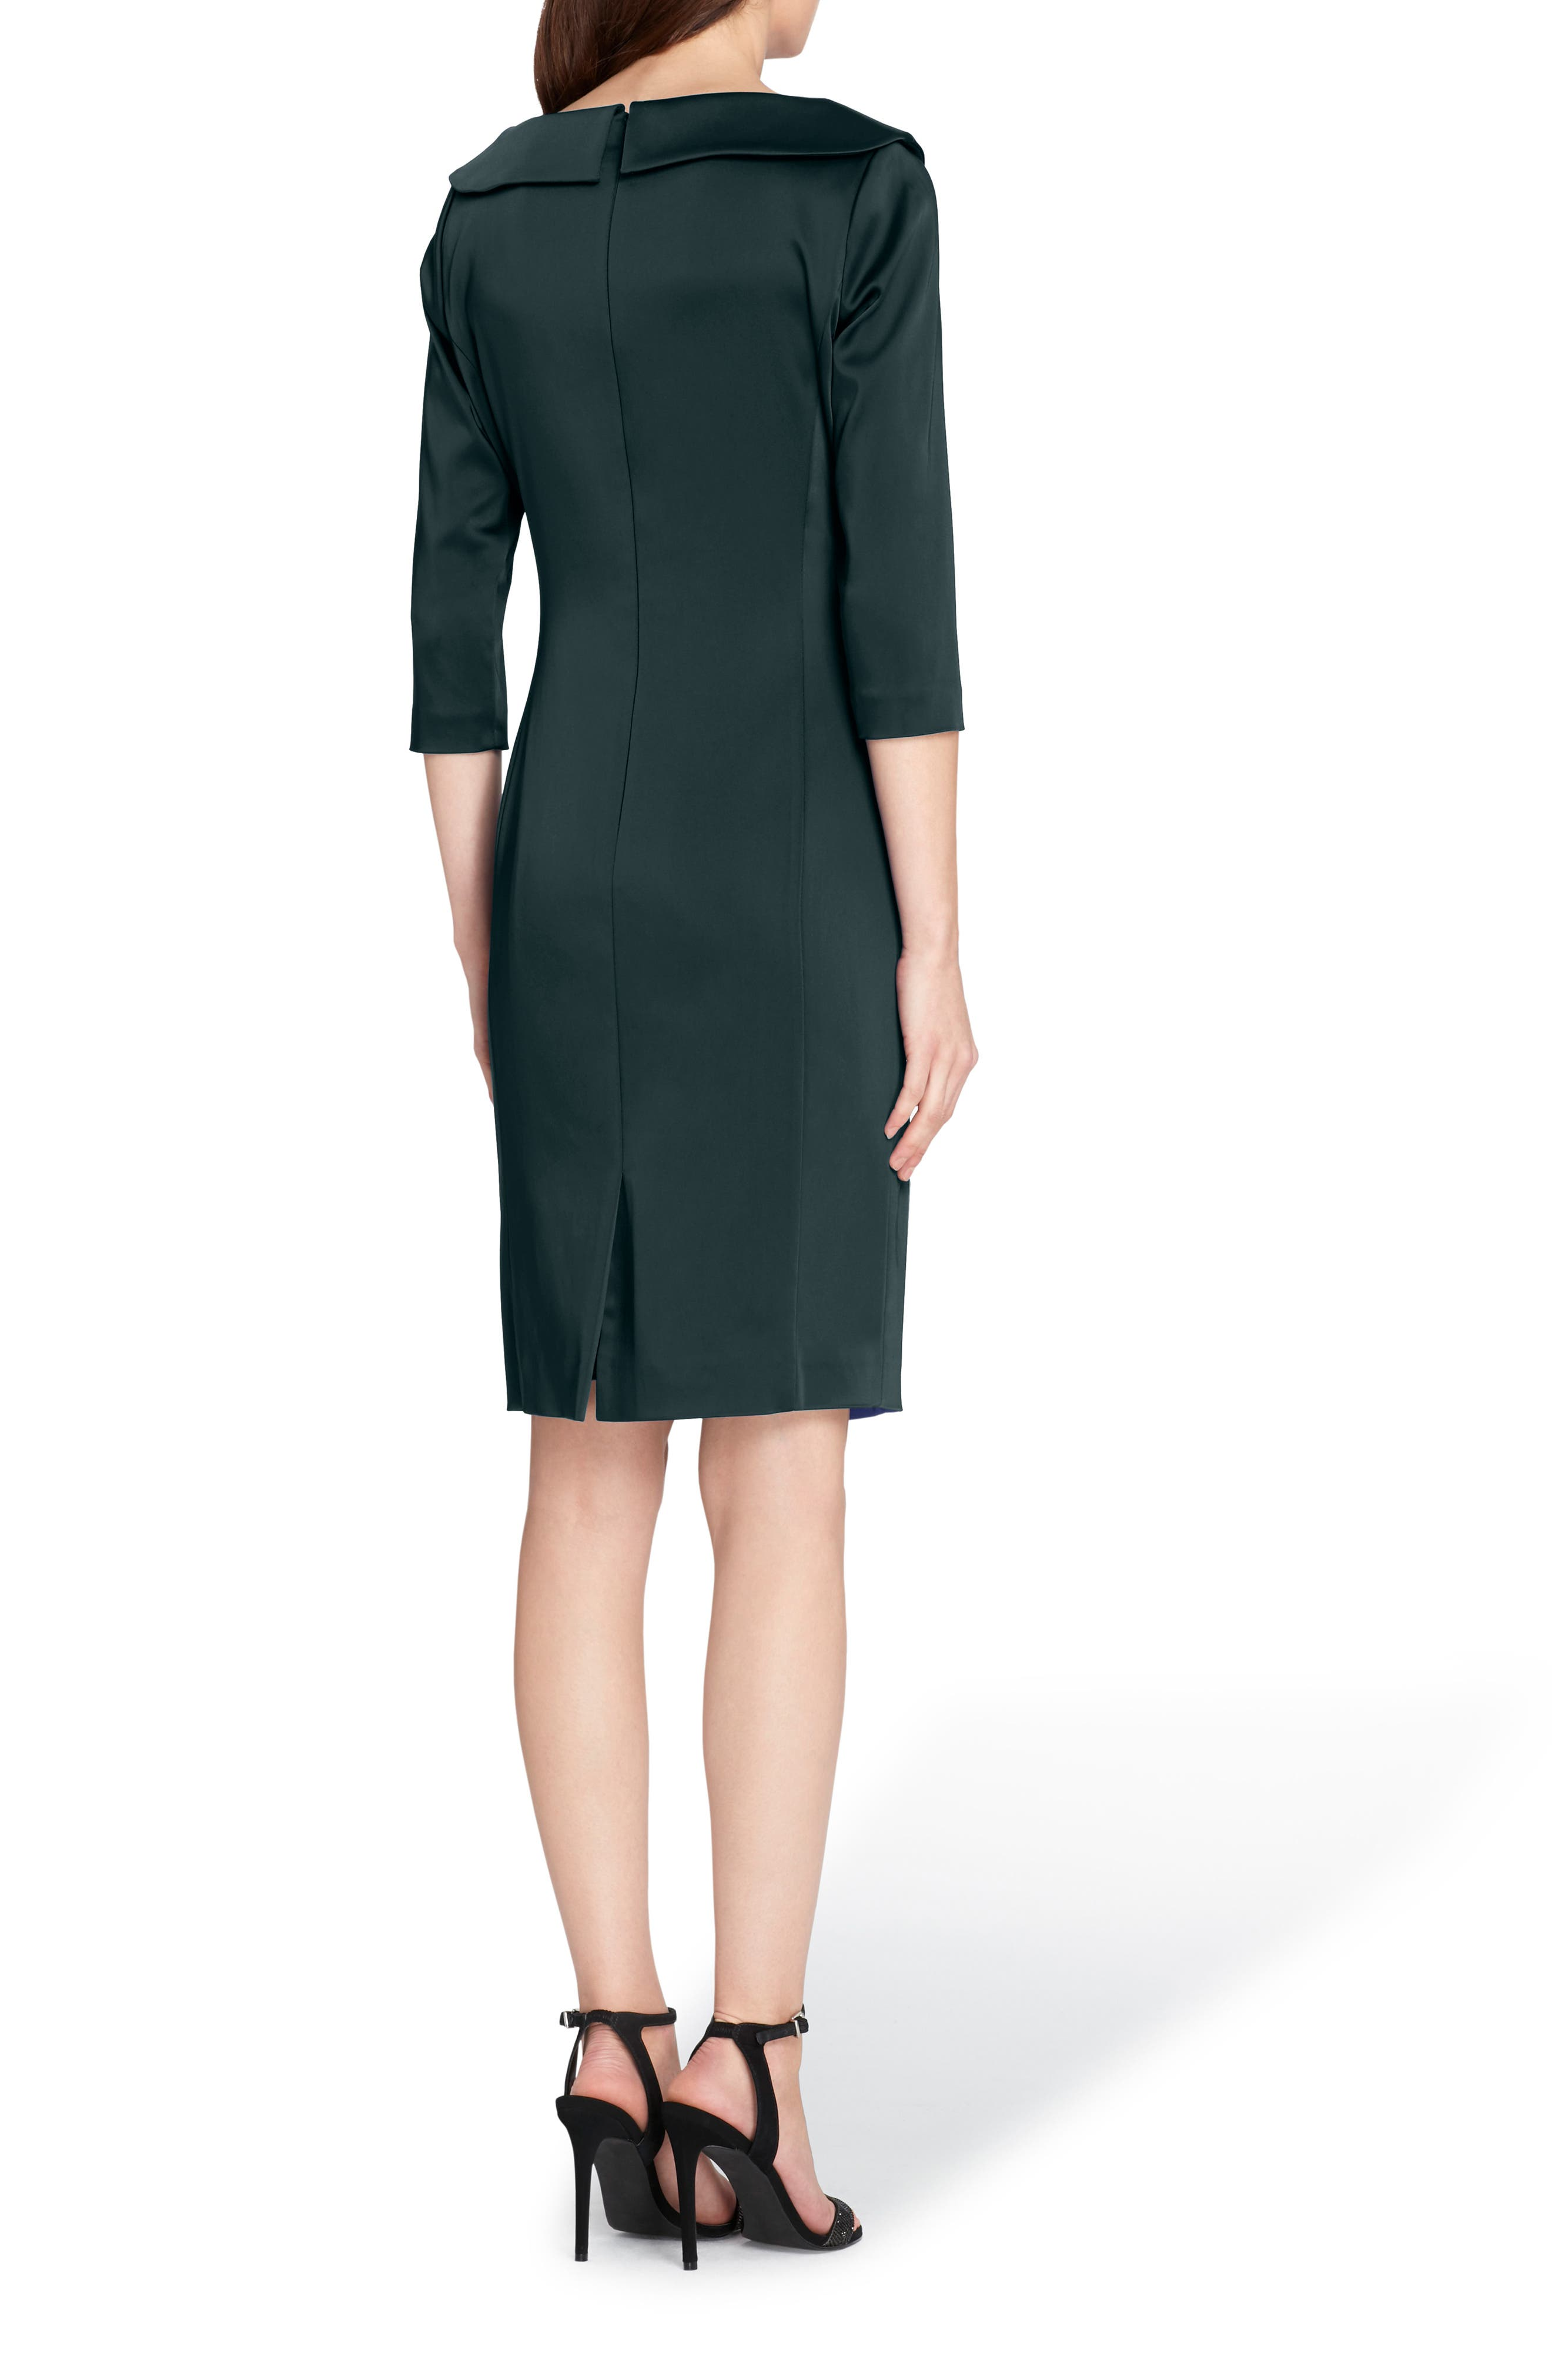 Ruched Stretch Satin Sheath Dress,                             Alternate thumbnail 2, color,                             Forest Green